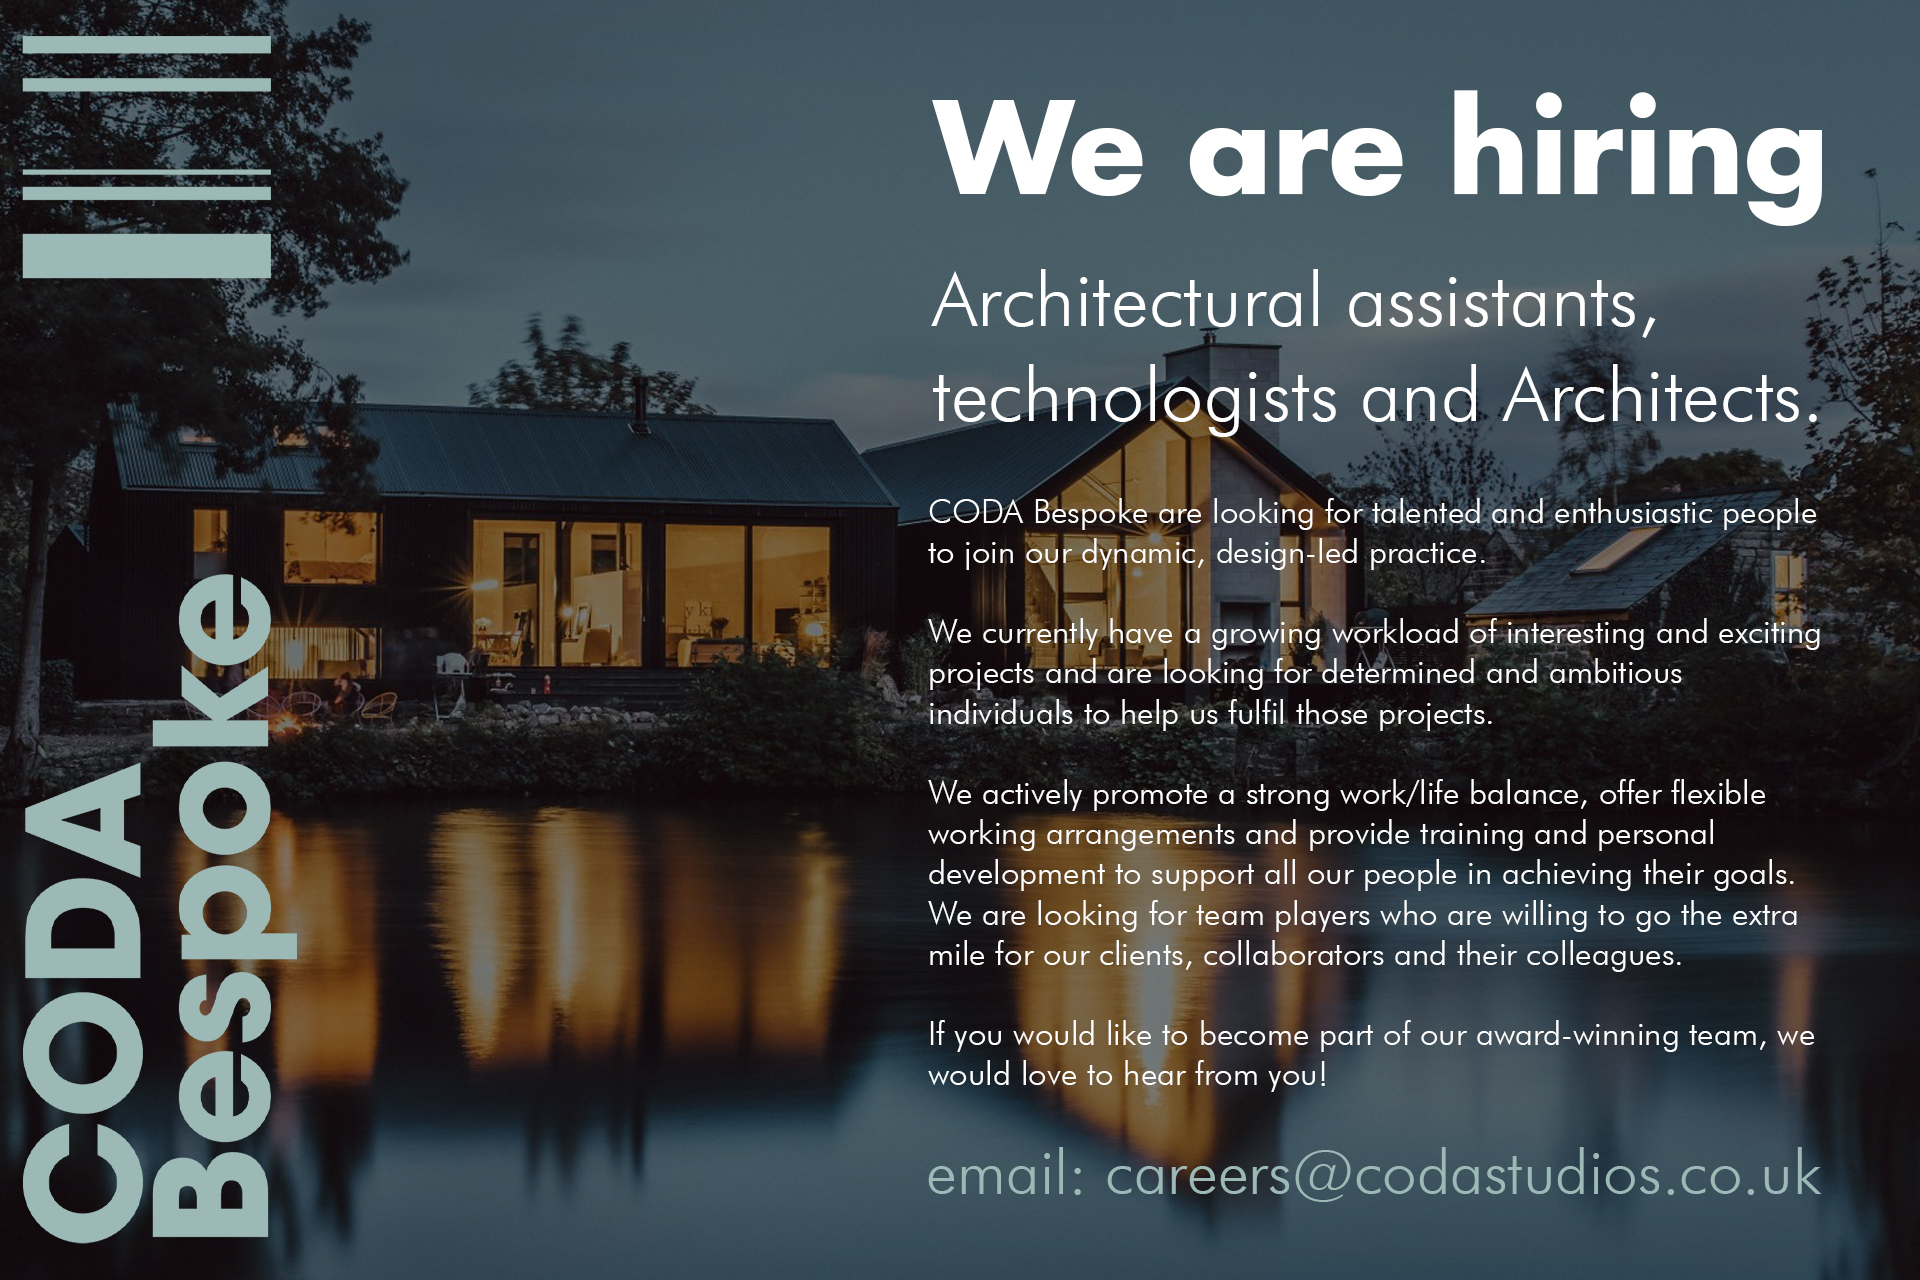 CODA-Bespoke-Architectural-assistants,-technologists-and-Architects-job-vacancy